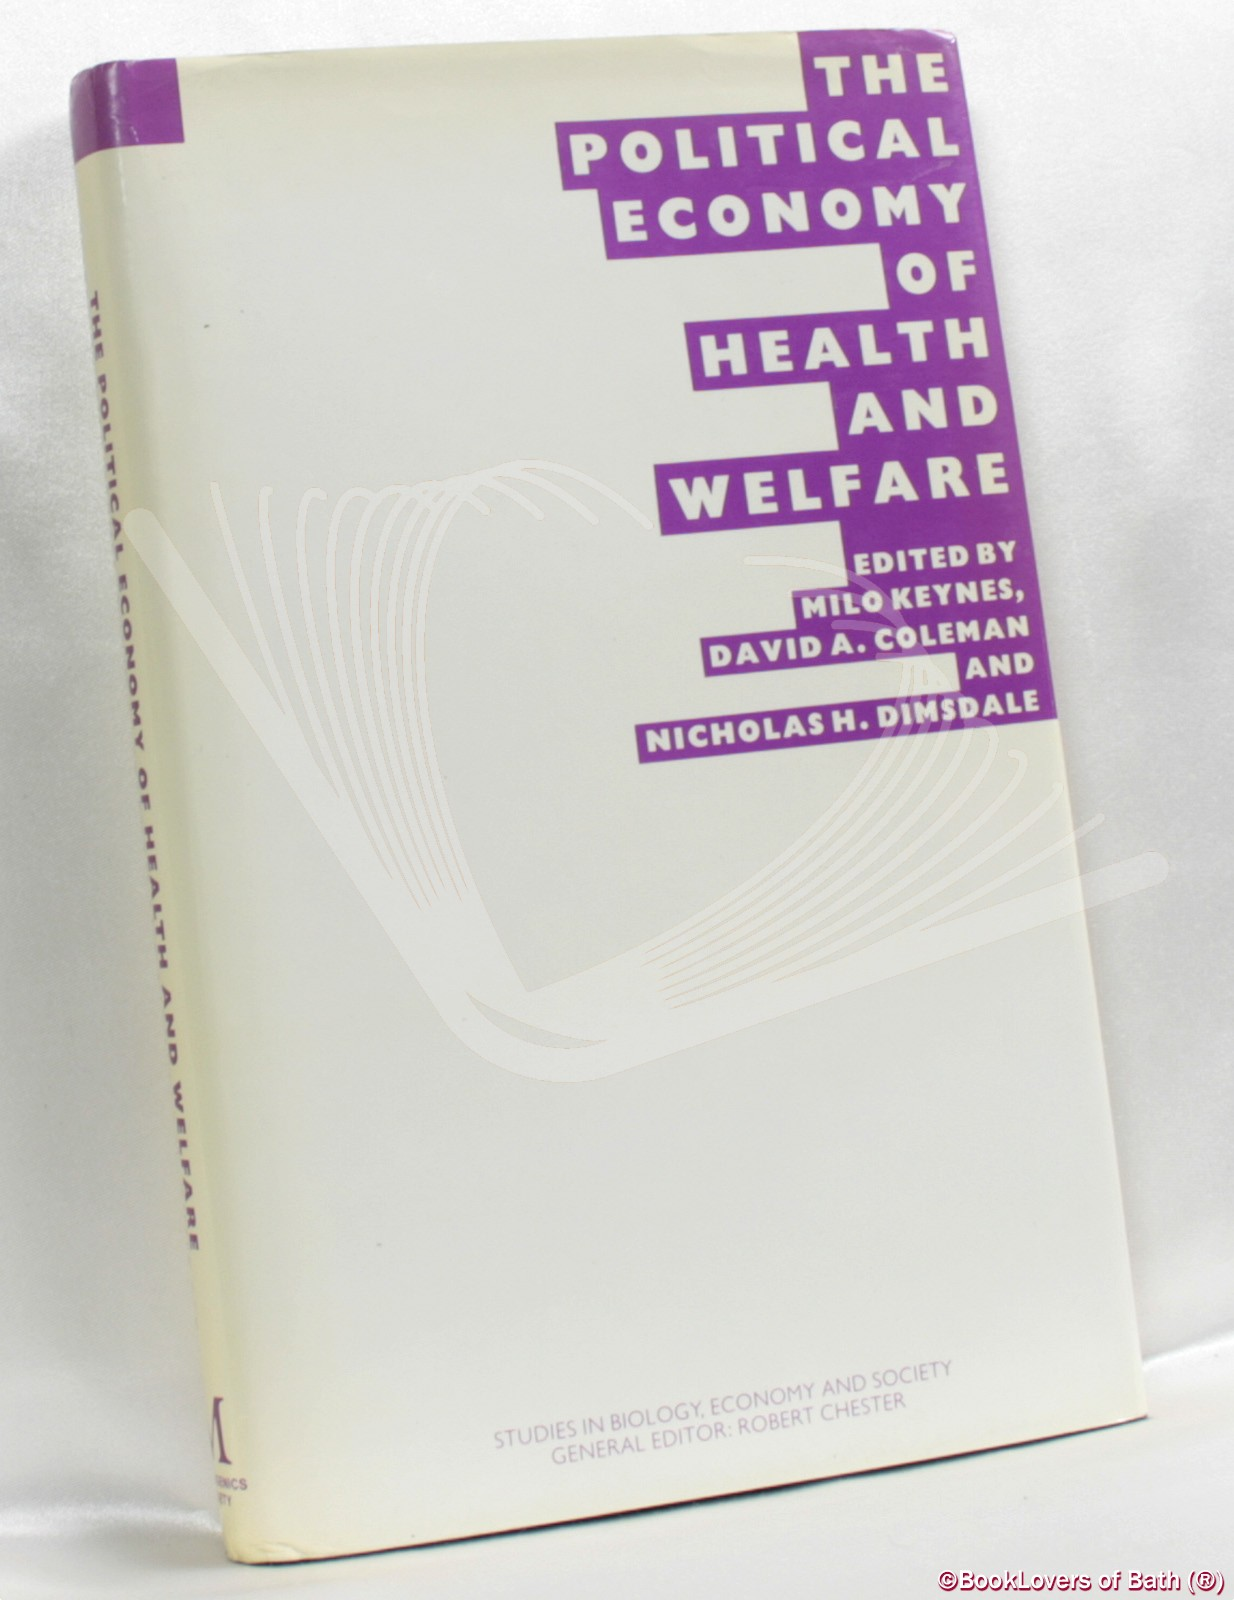 The Political Economy of Health and Welfare: Proceedings of the Twenty-second Annual Symposium of the Eugenics Society, London, 1985 - Edited by Milo Keynes, David A. Coleman & Nicholas H. Dimsdale